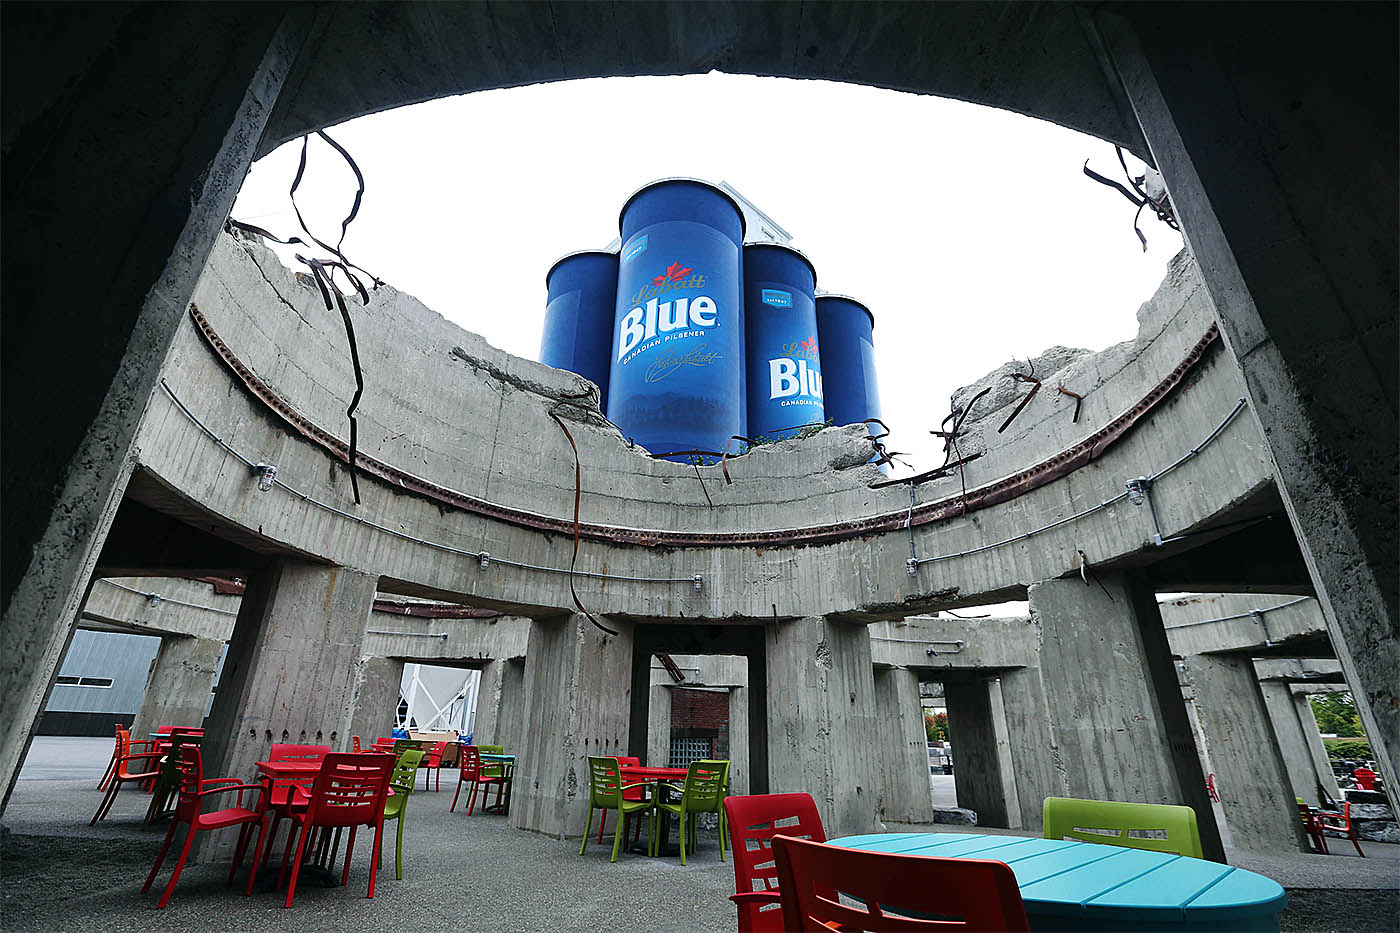 RiverWorks is constructing a brewery inside the Labatt Blue grain silos. They hope to open before year's end. They made a beer garden out of the ruins of a some grain silos. Photo taken, Tuesday, Oct. 11, 2016. (Sharon Cantillon/Buffalo News)